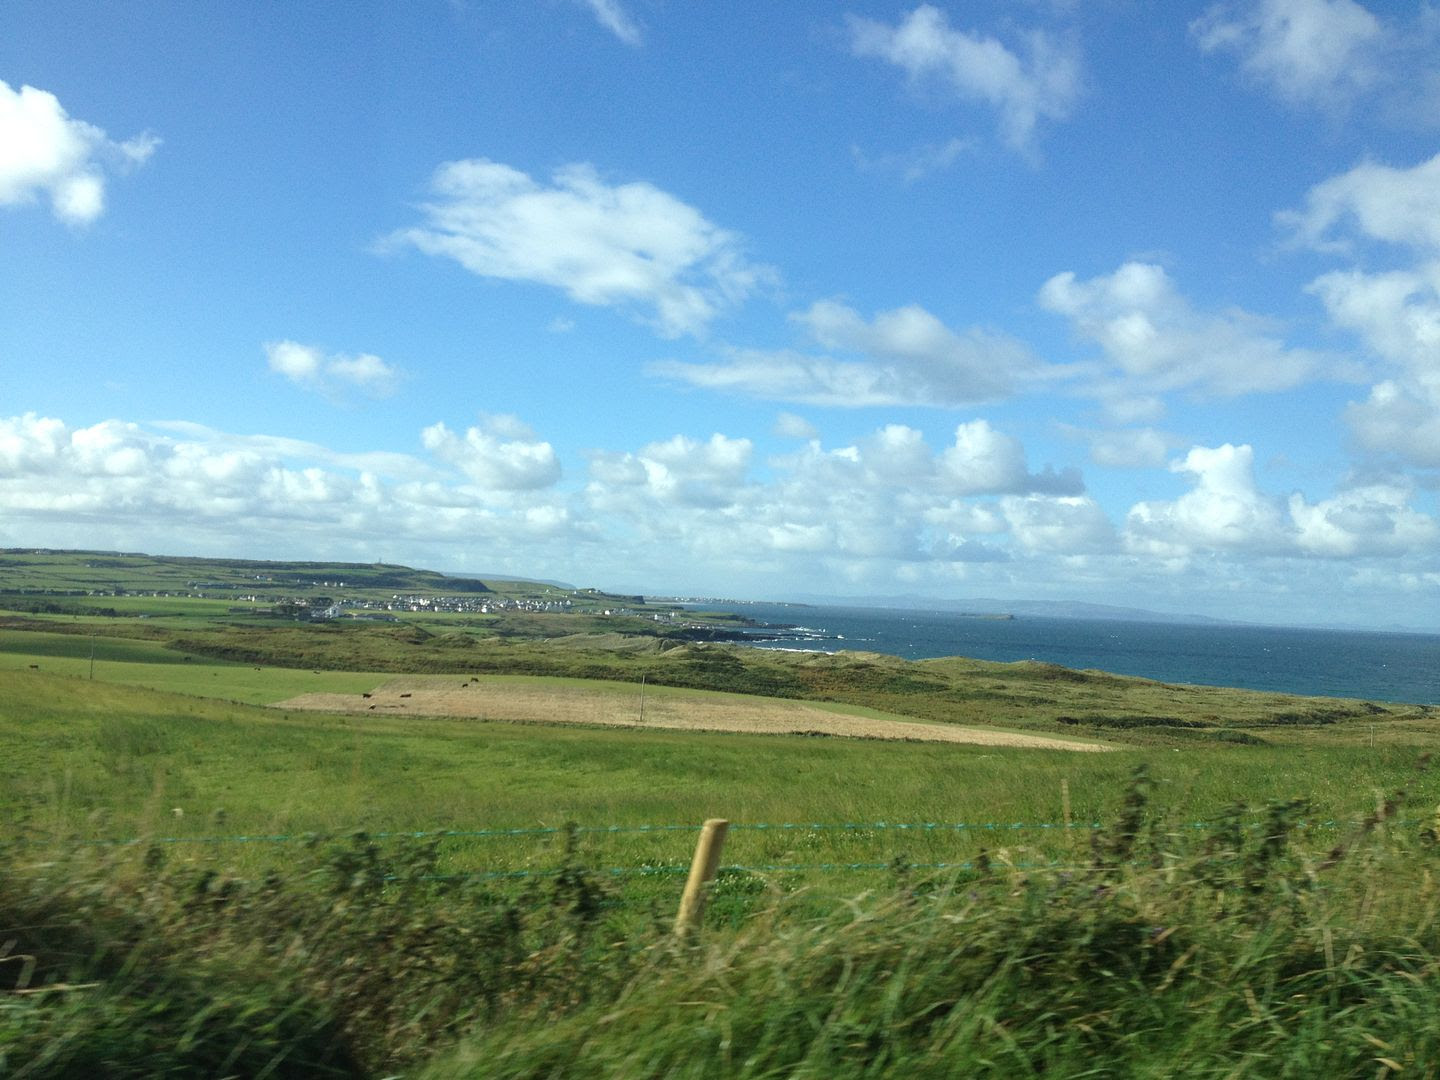 Drive to the Giant's Causeway in Northern Ireland photo 2015-10-12 12.30.10_zpsvrlnkrkt.jpg